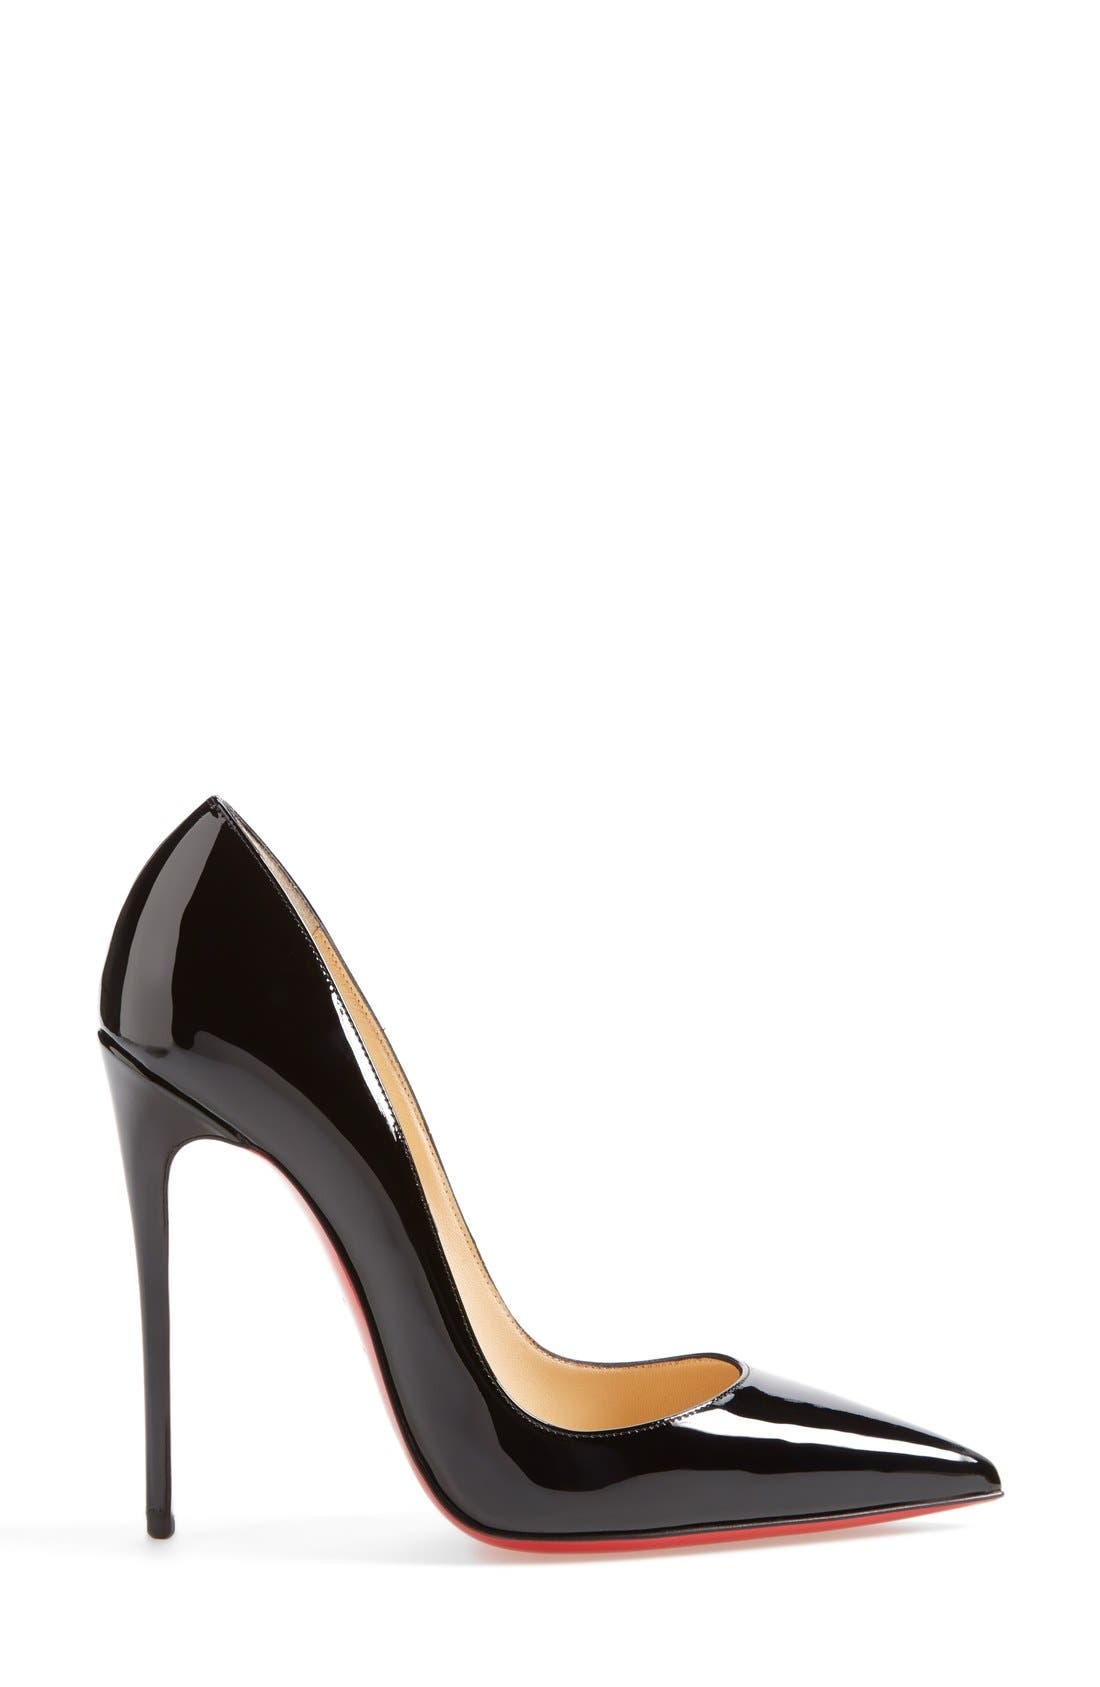 CHRISTIAN LOUBOUTIN, So Kate Pointy Toe Pump, Alternate thumbnail 4, color, BLACK